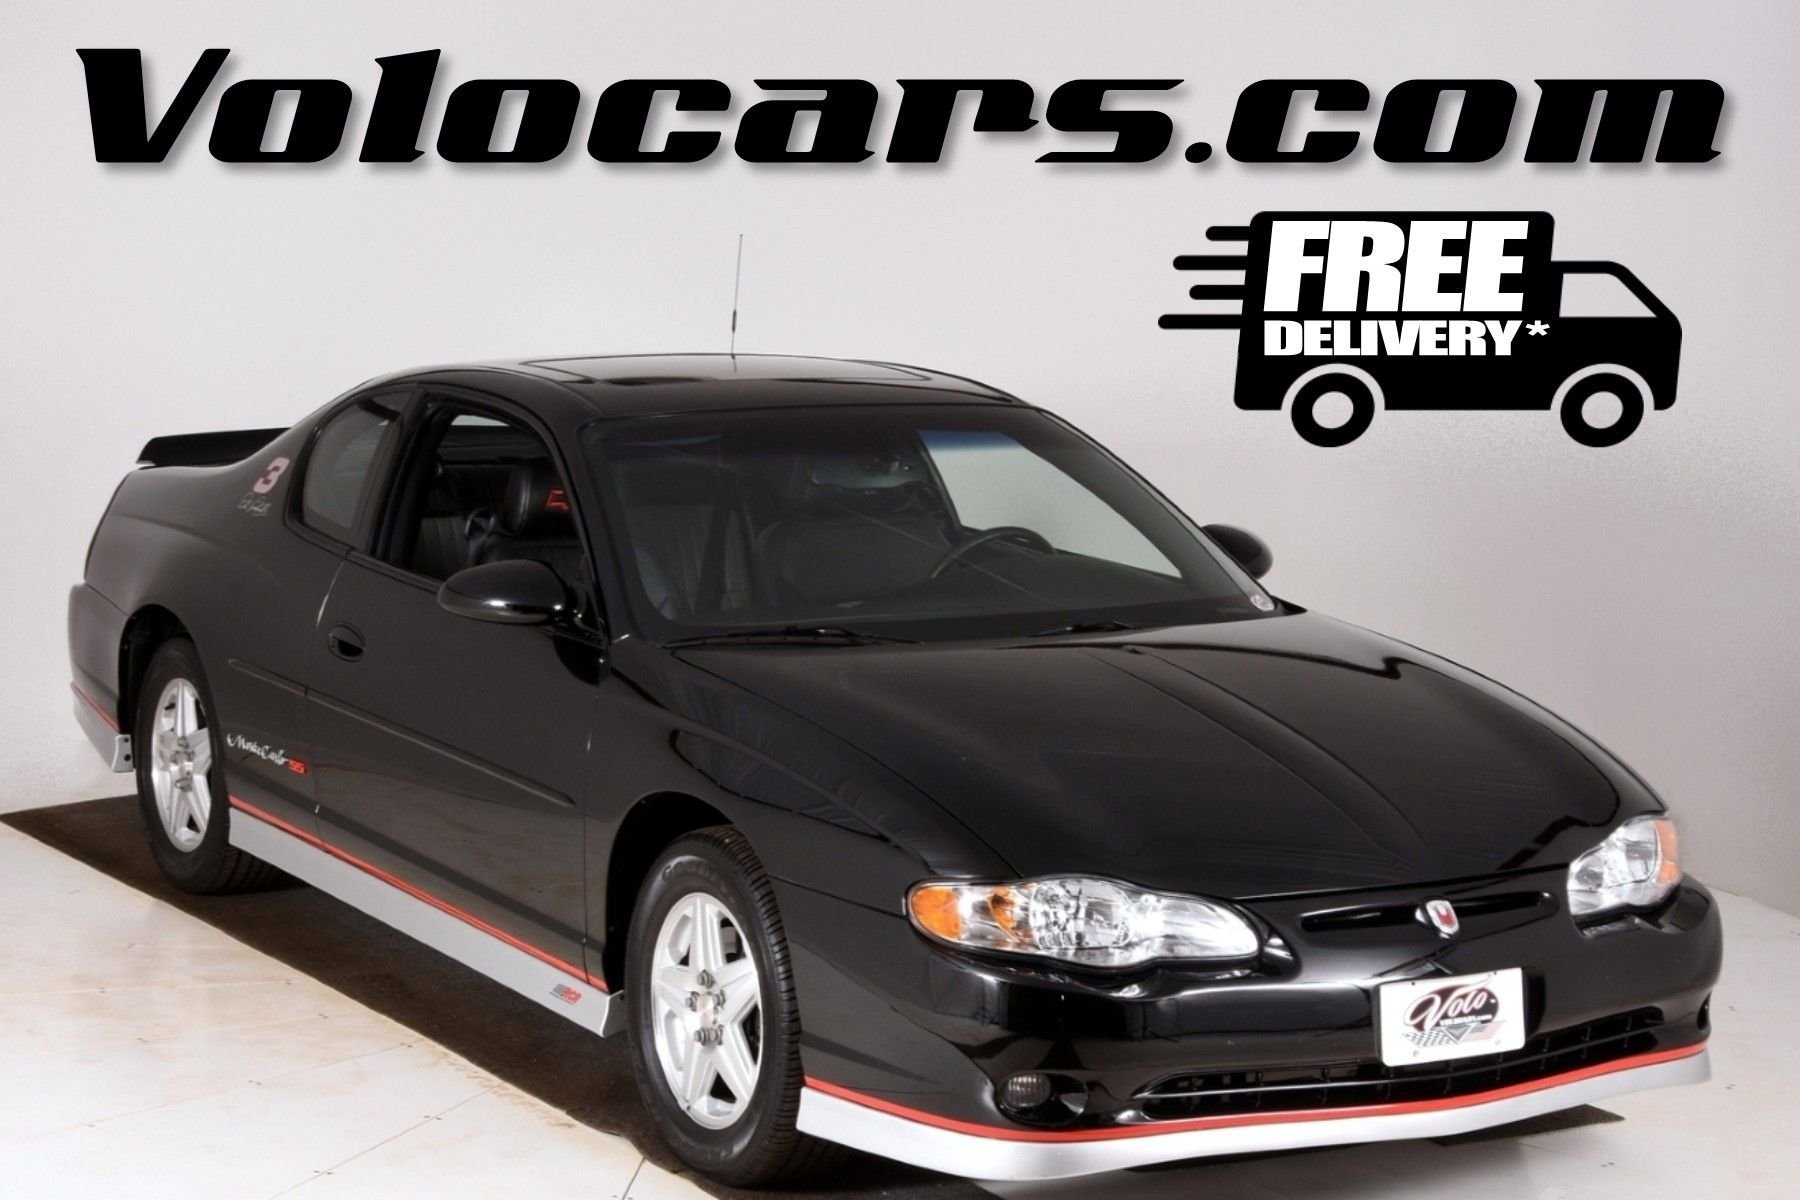 2002 chevrolet monte carlo ss earnhardt edition